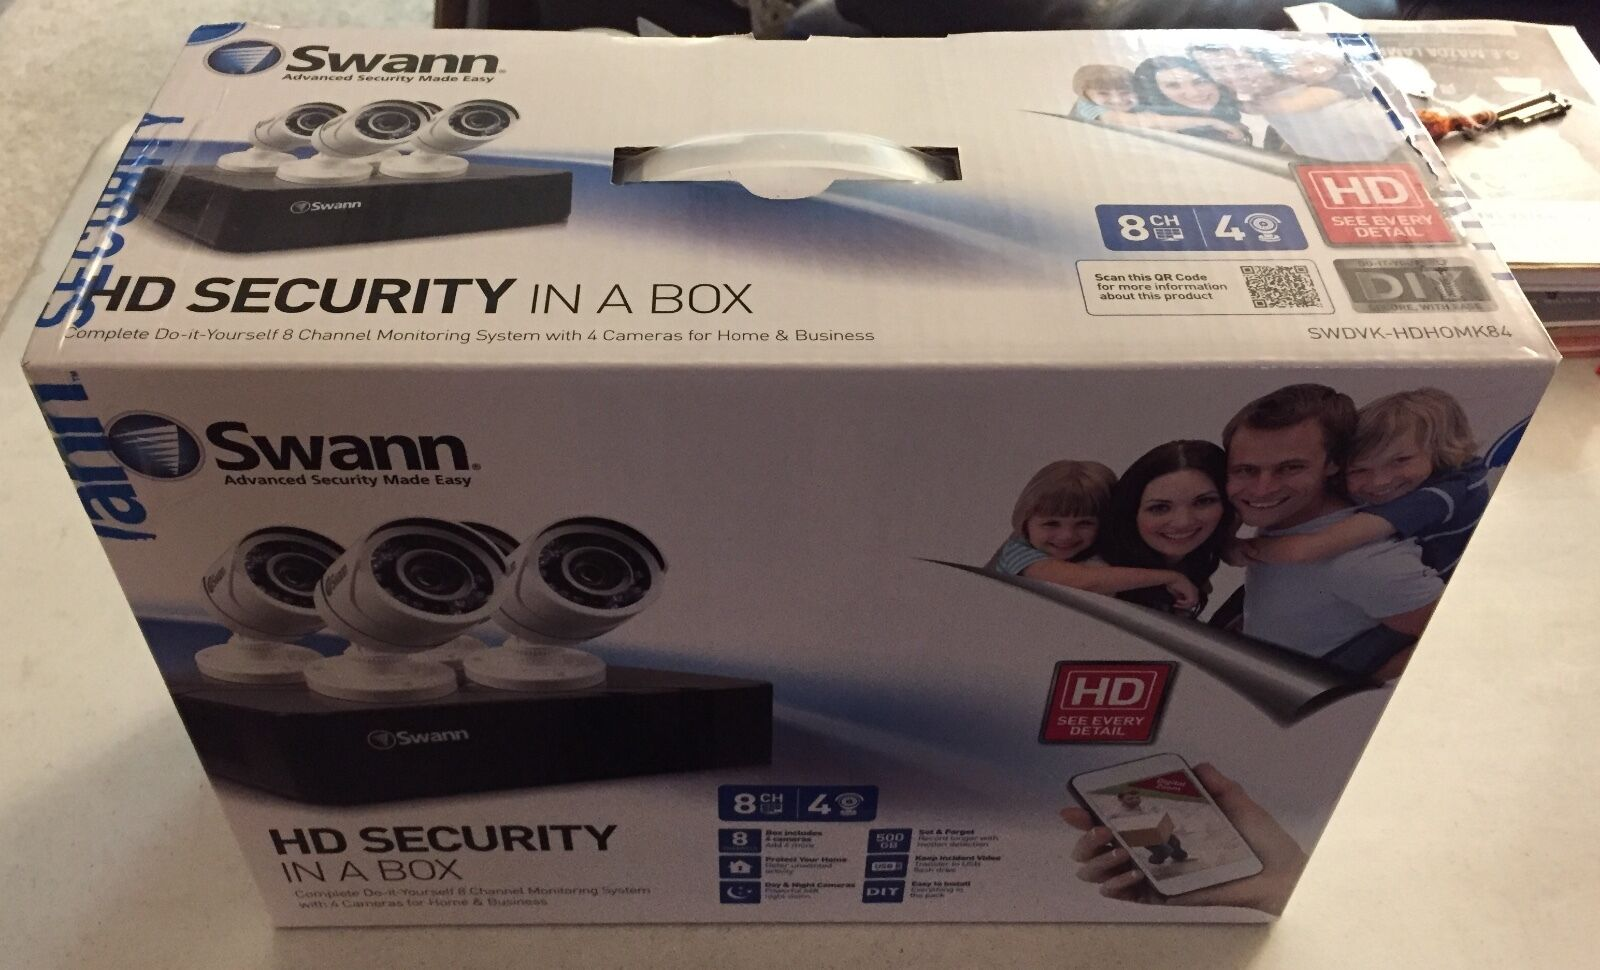 Swann SWDVK-HDHOMK84 8 Channel Security Cameras //NEW//